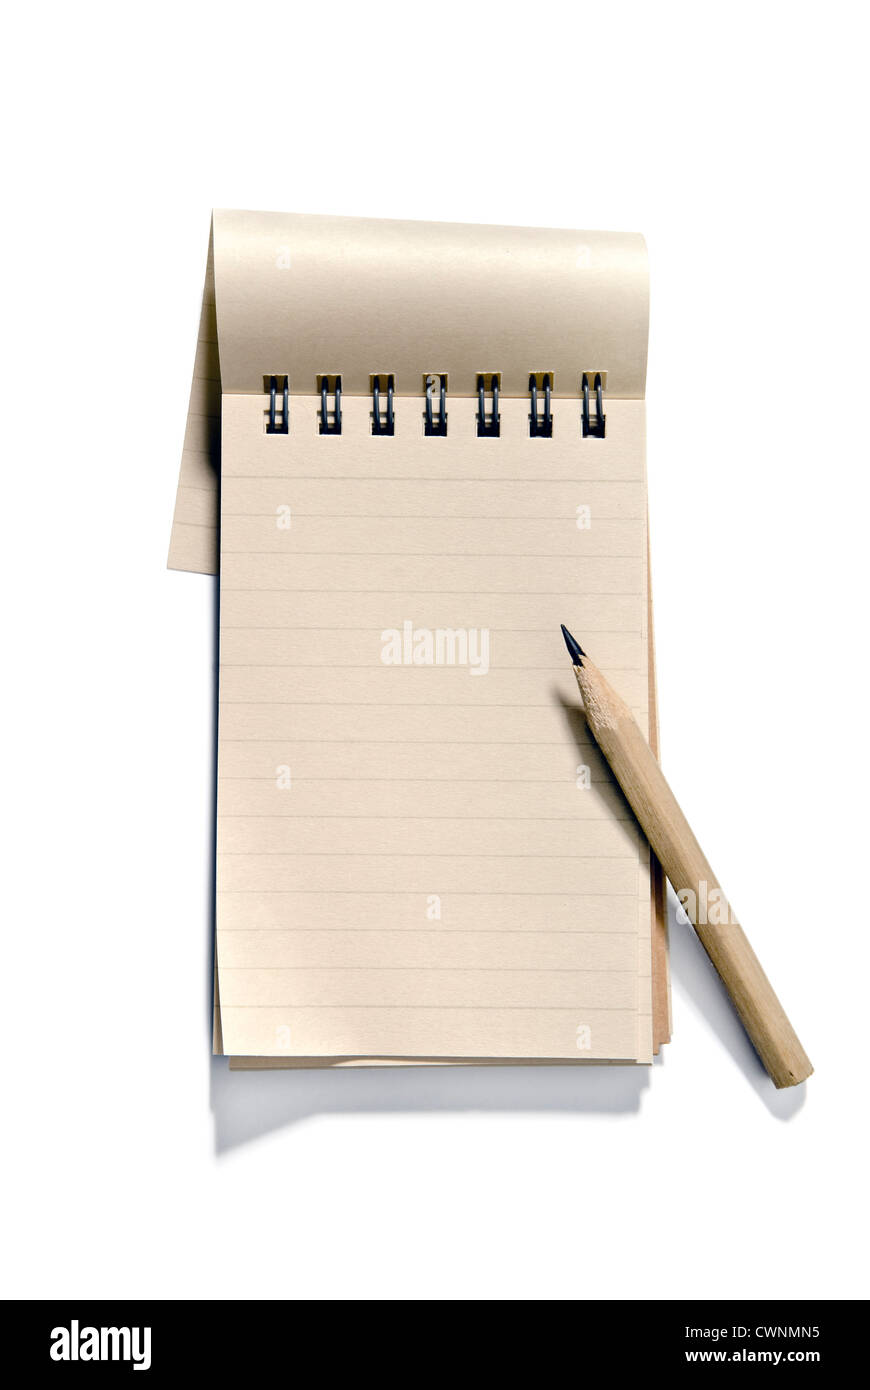 Notepad with a pencil, blank, isolated on 100% white background - Stock Image